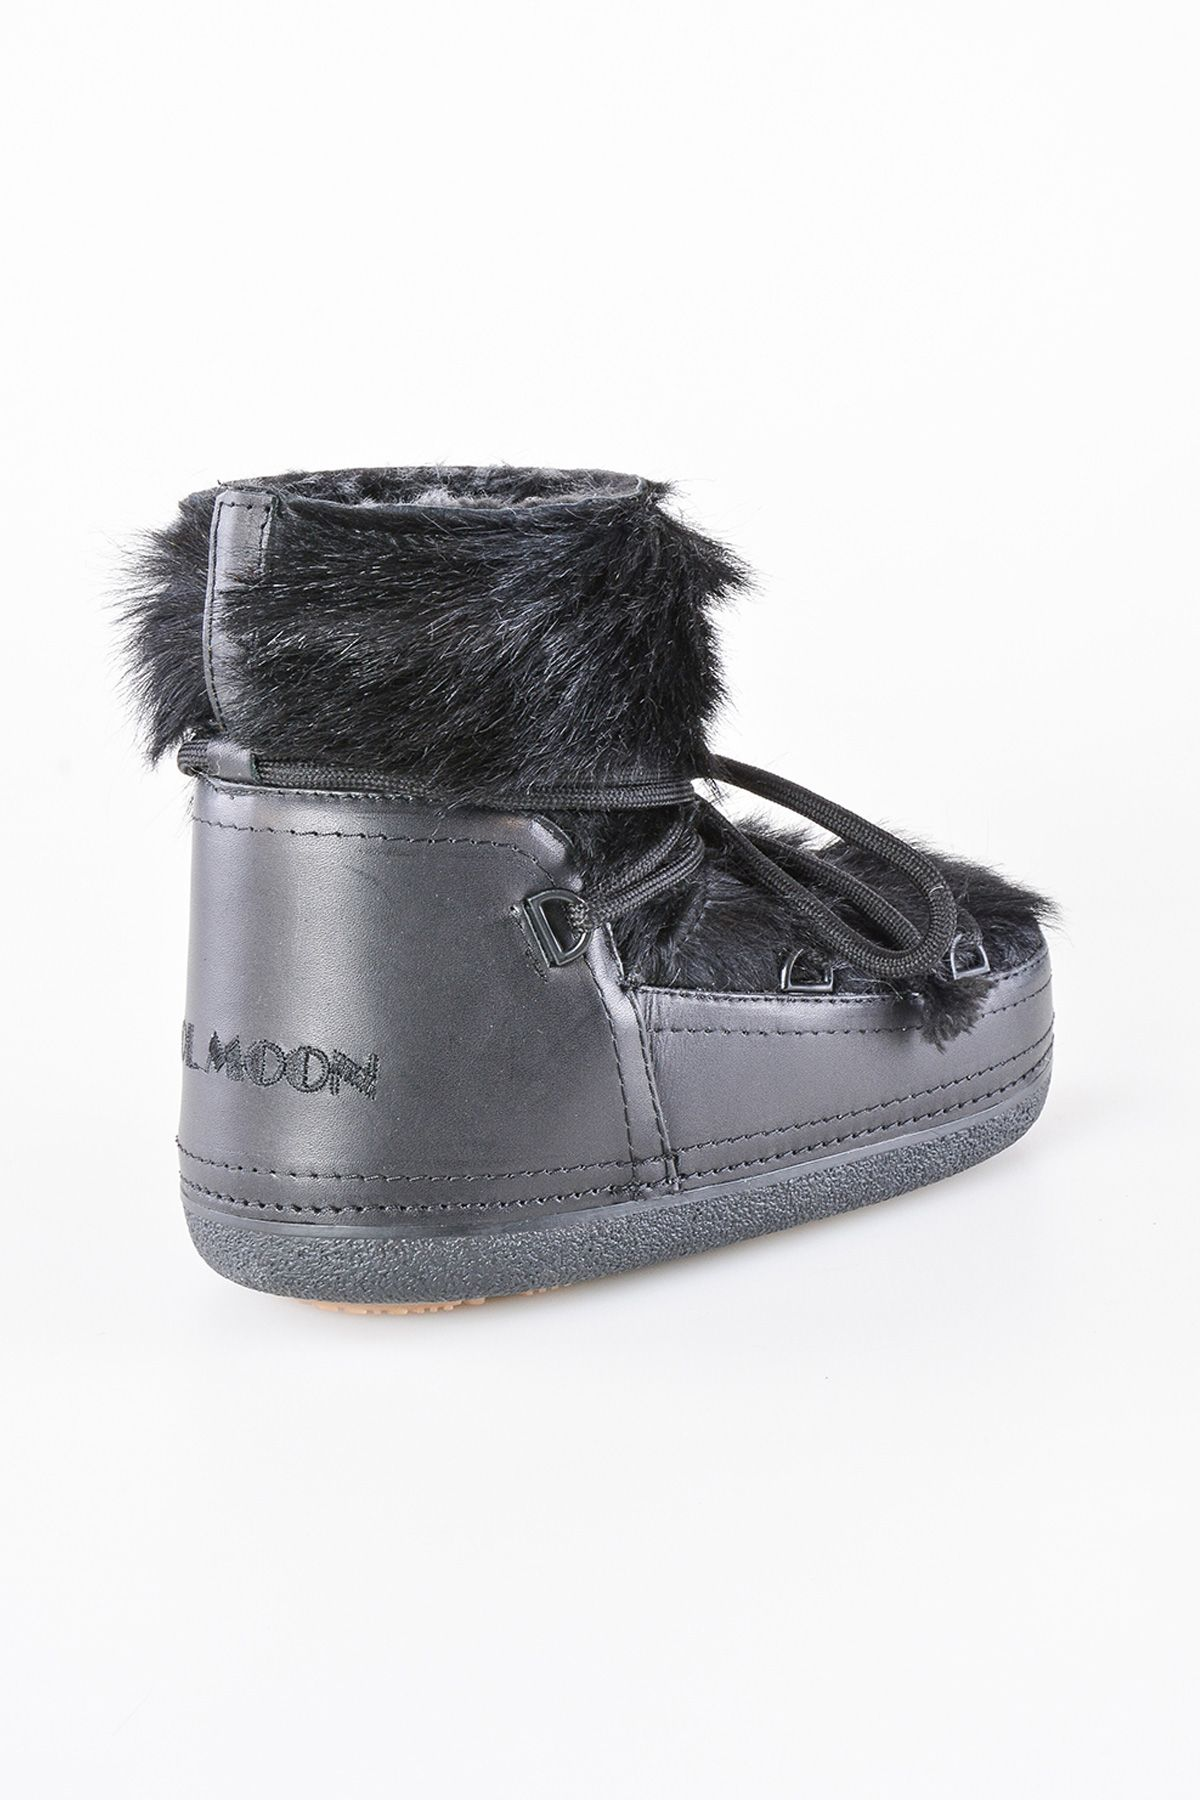 Cool Moon Moonboots From Genuine Sheepskin With Toscana Fur Black